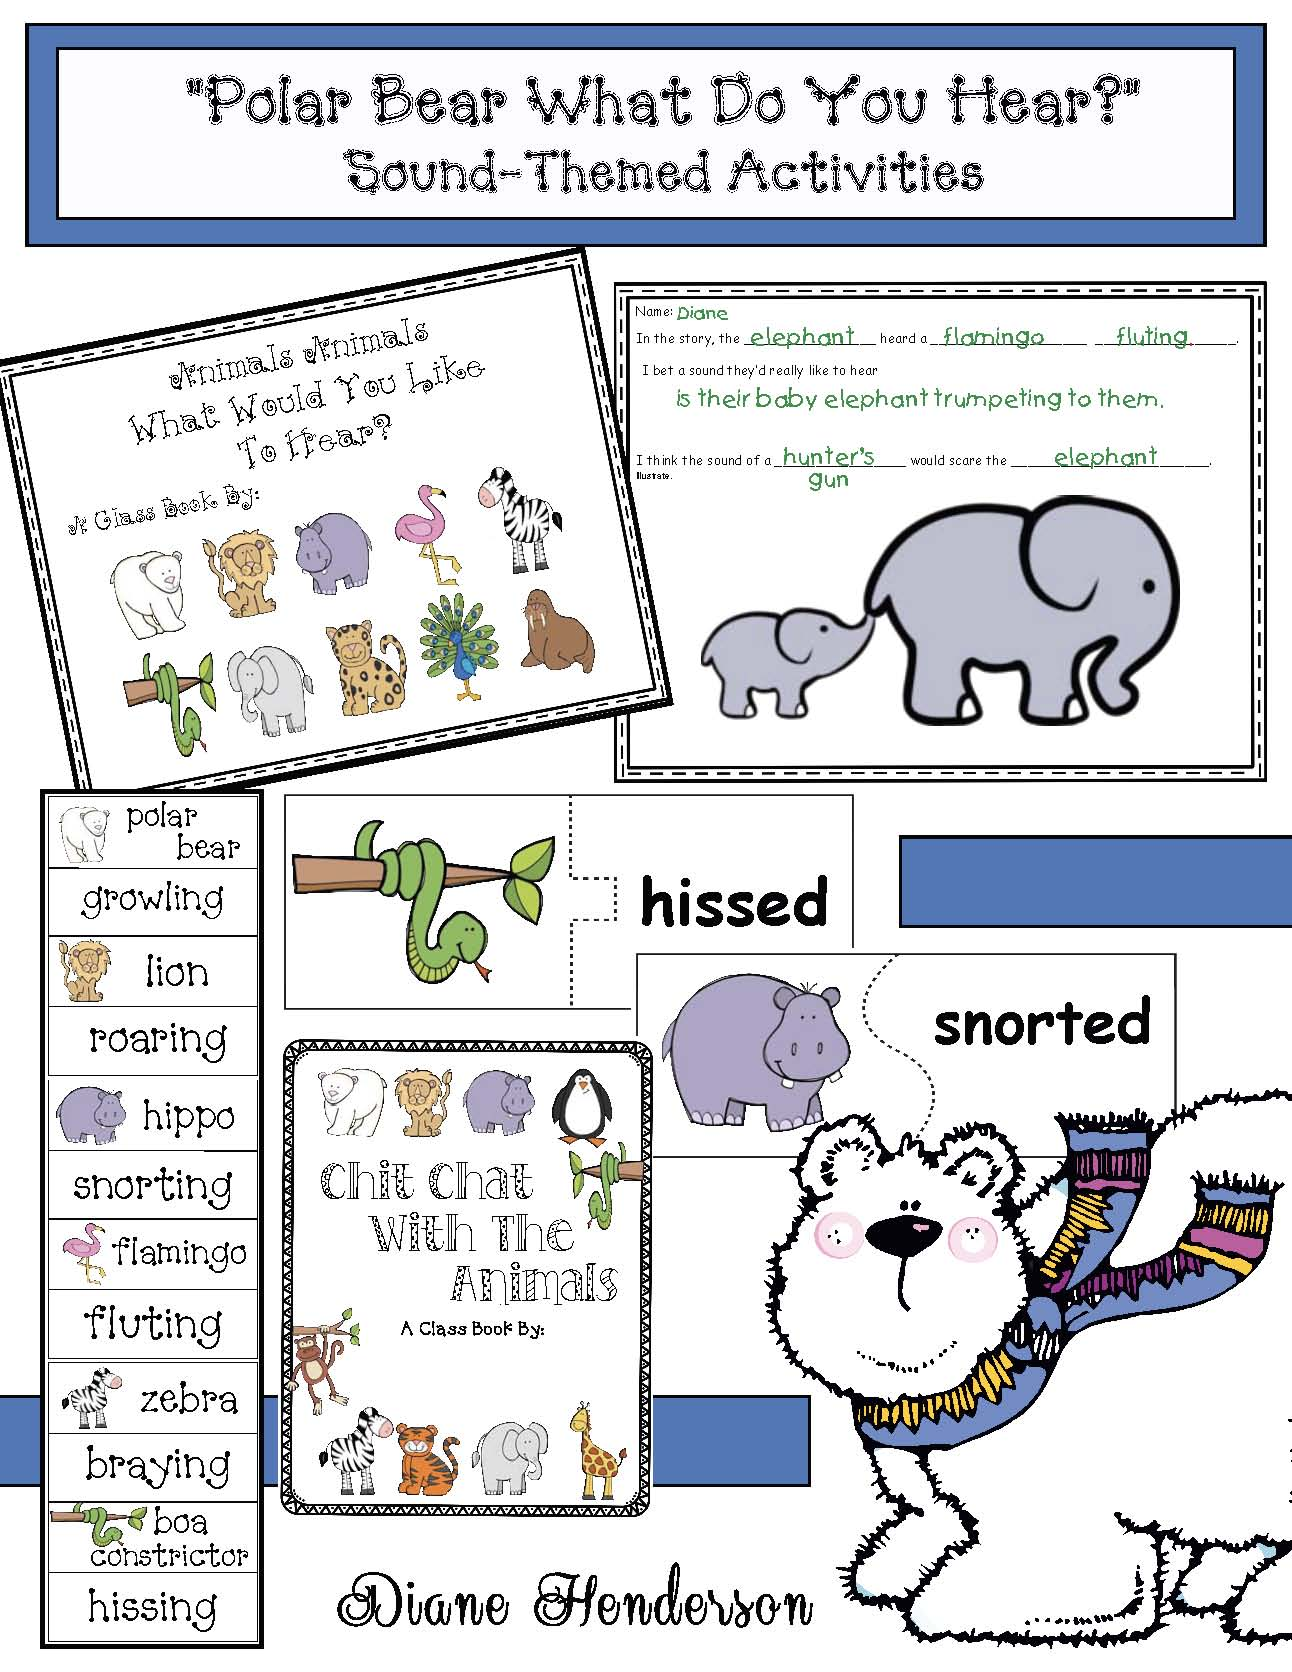 polar bear what do you hear activities, 5 senses activities, eric carle books, bill martin books, polar bear crafts, retelling a story activities, sequencing a story activities, farm animal activities, story wheels, emergent reader books, winter center activities,class made books